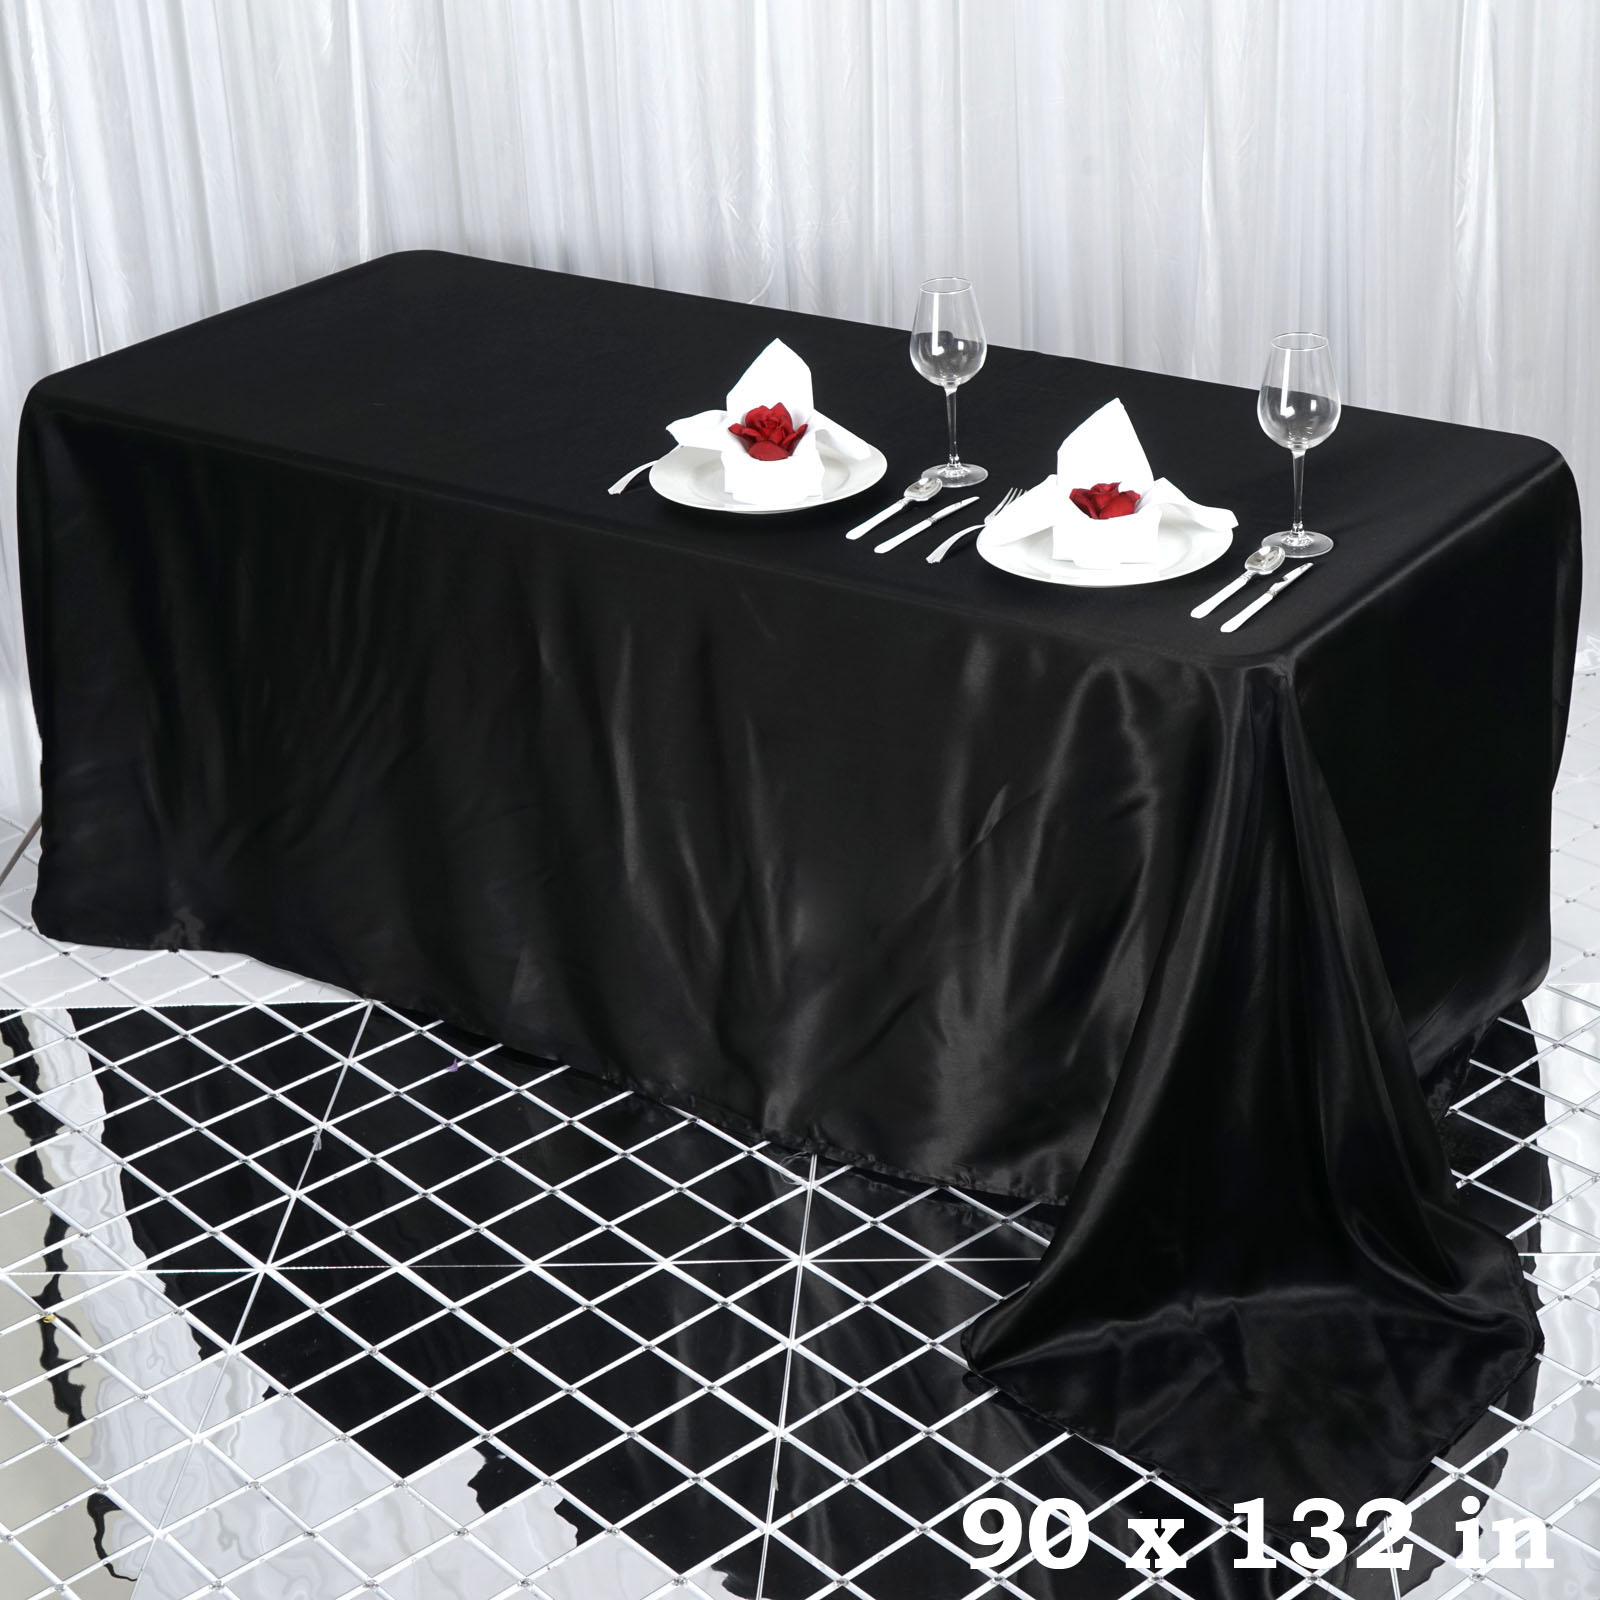 90x132-034-Rectangle-Satin-Tablecloth-For-Wedding-Party-Banquet-Events-Decoration thumbnail 3